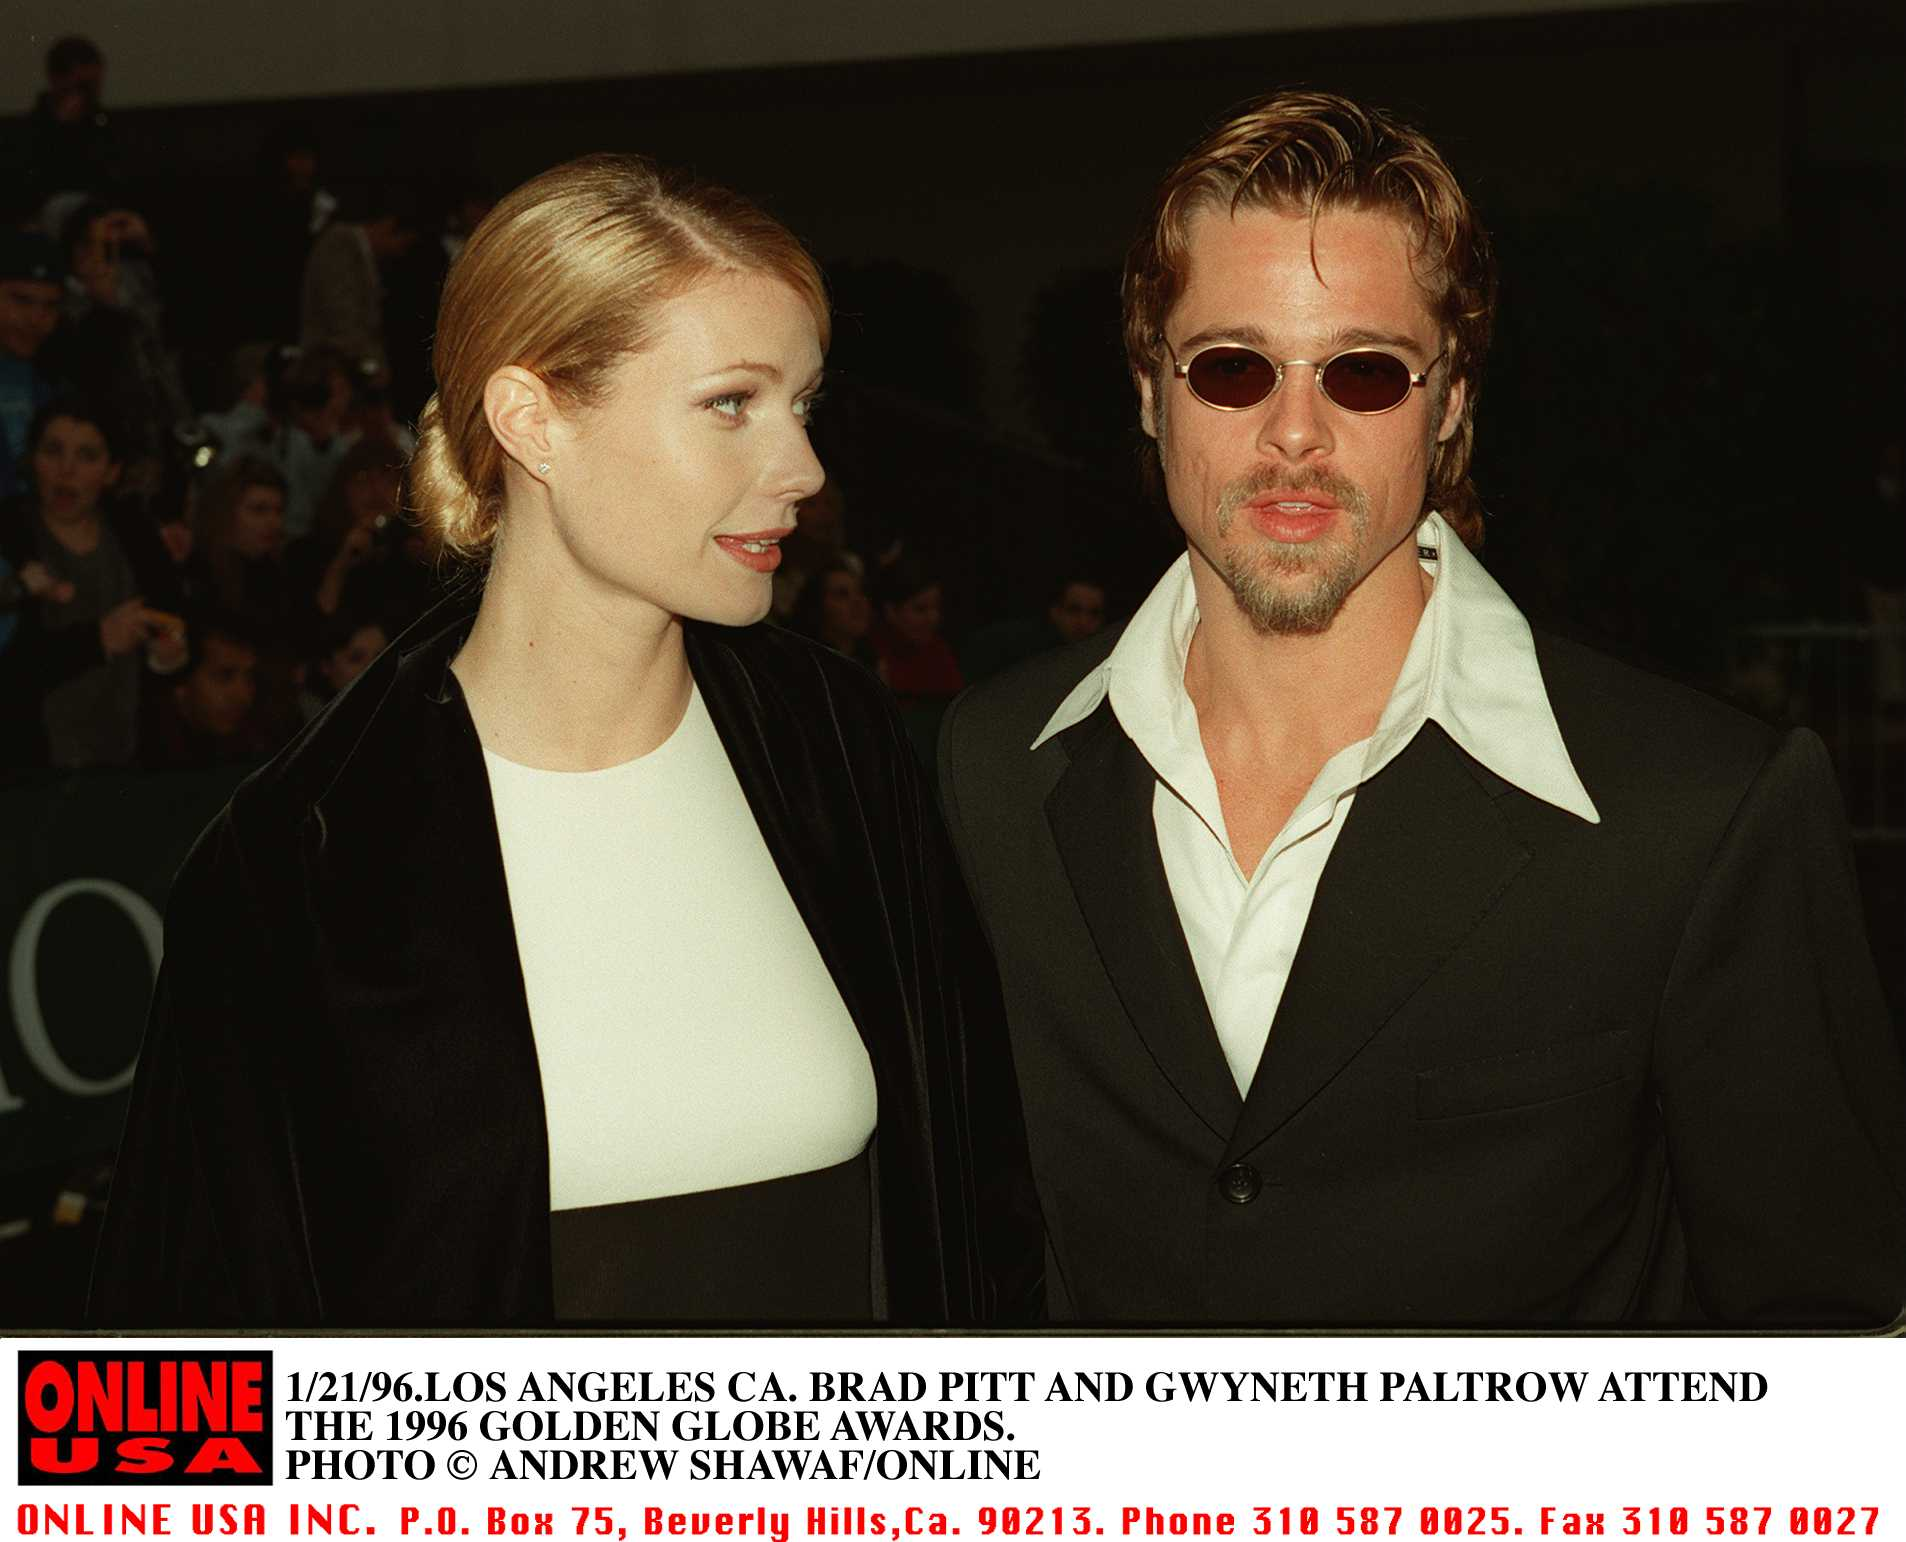 Image Credits: Getty Images / Hulton Archive / Andrew Shawaf / Online USA |  Brad Pitt and Gwyneth Paltrow.